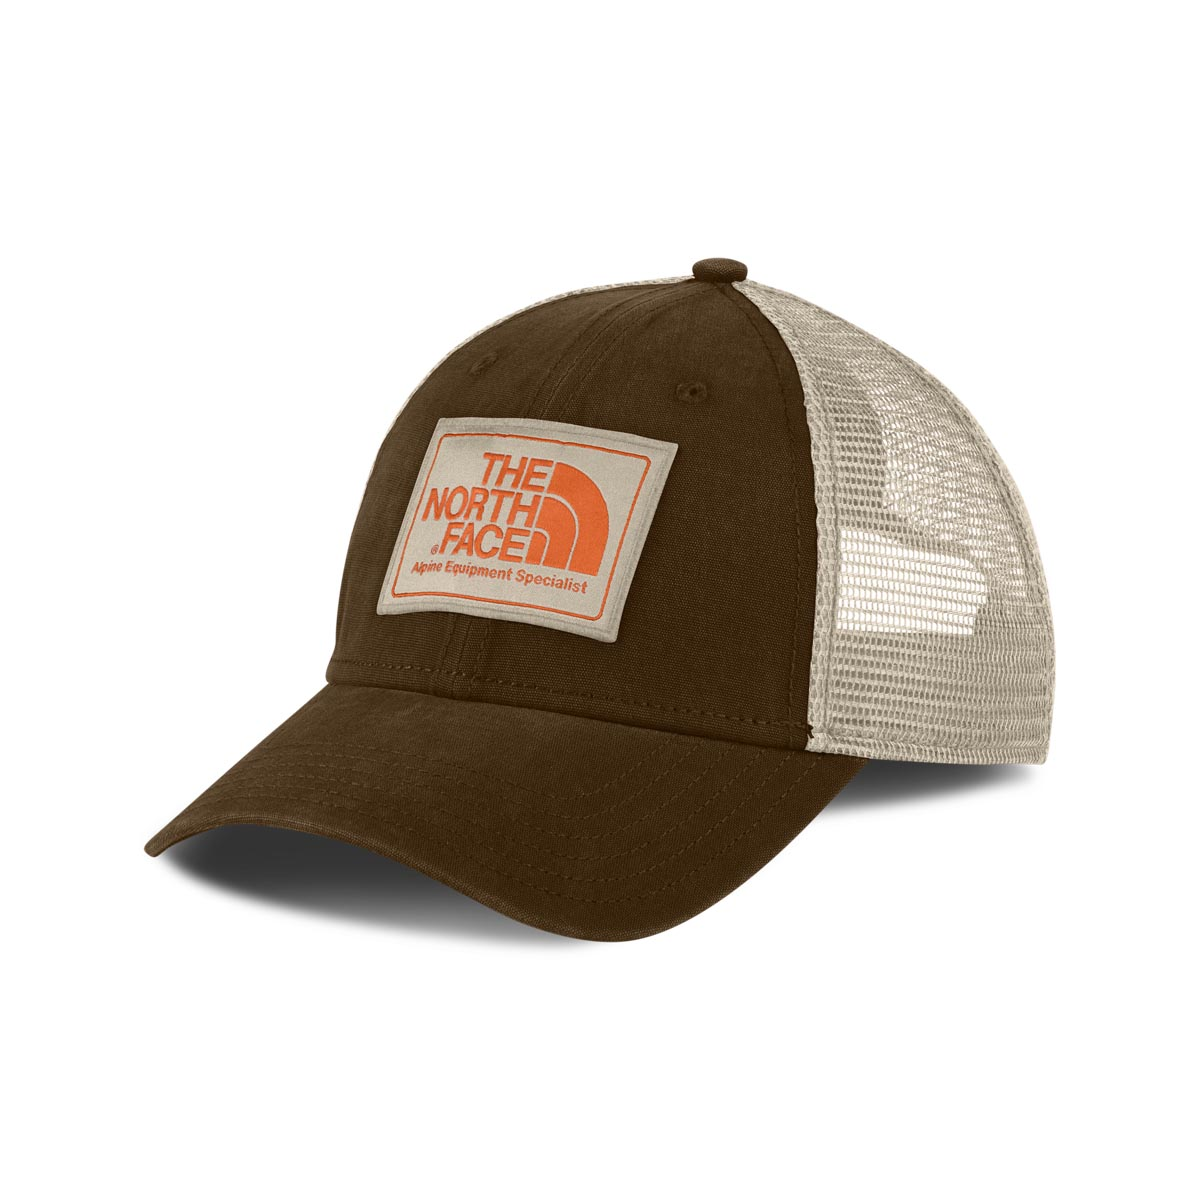 The North Face Mudder Trucker Hat Pricing